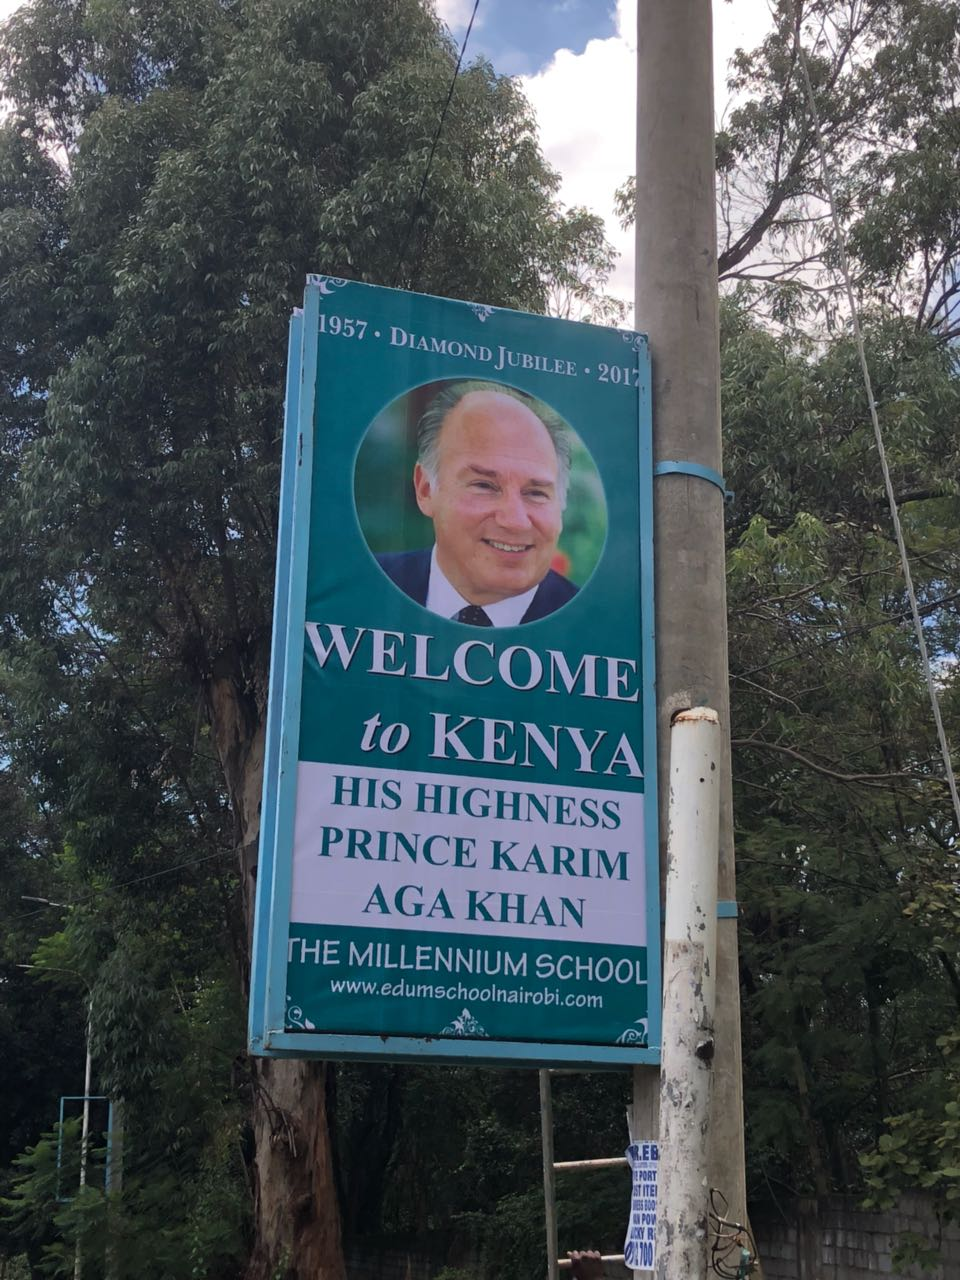 2018-04-12-PHOTO-Aga Khan Visit Kenya Billboard at a school